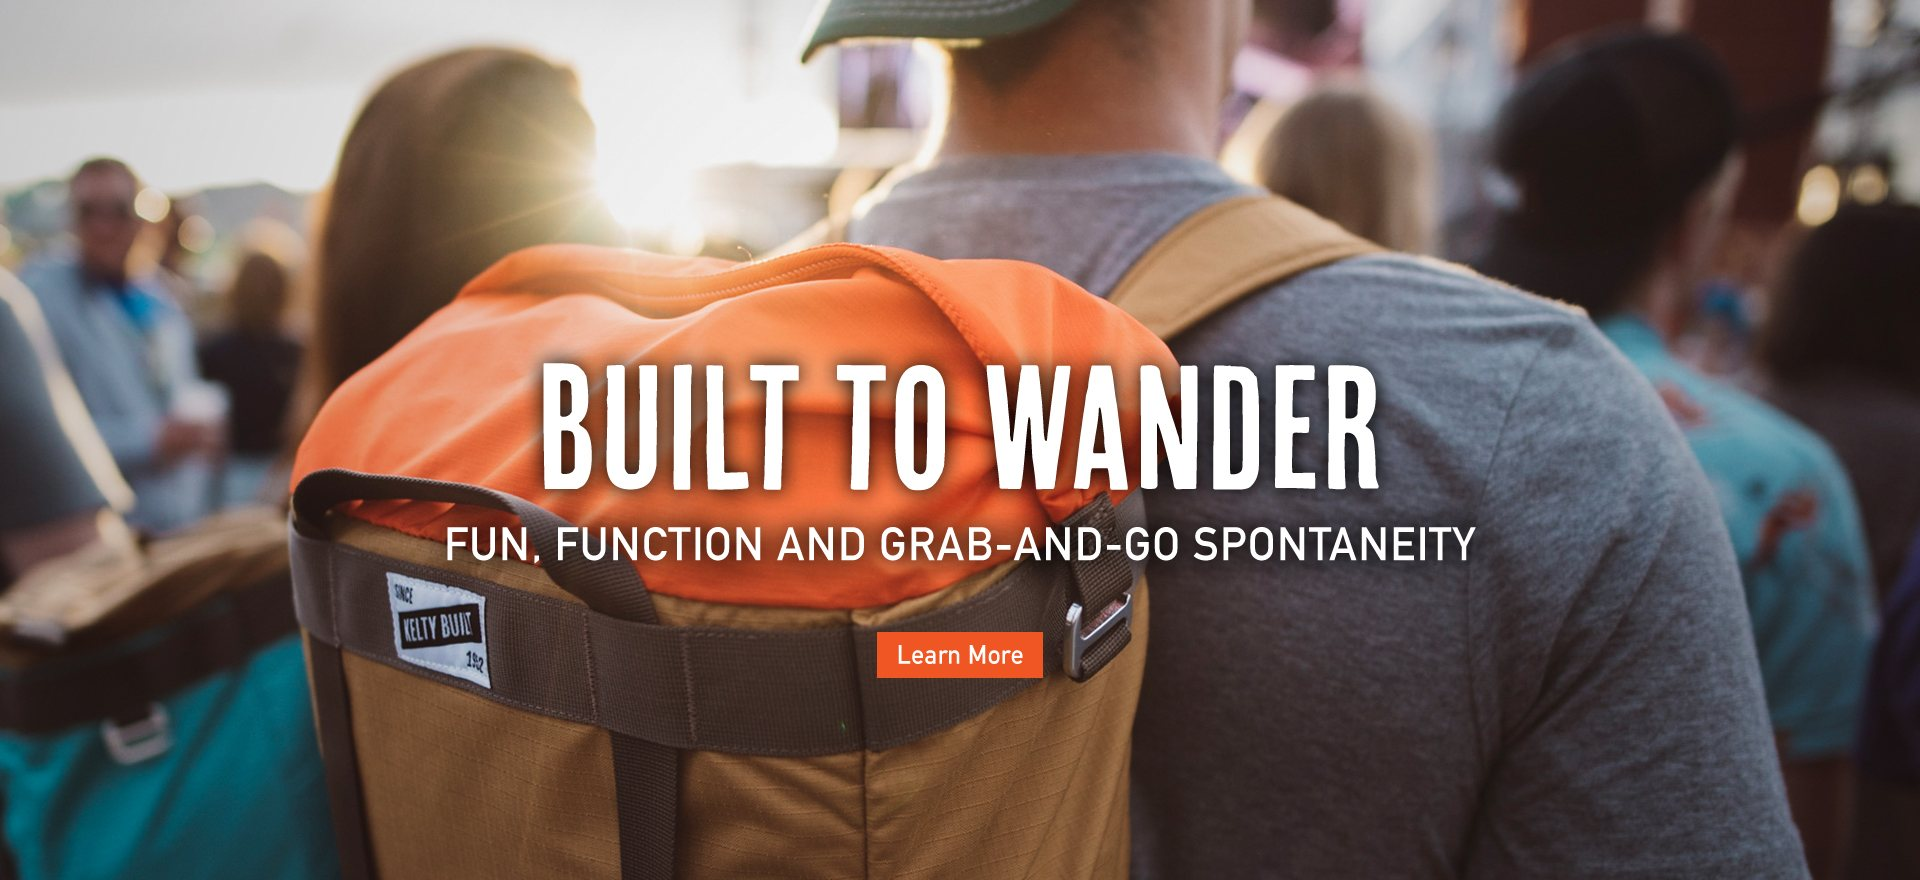 Shop the Built to Wander Collection